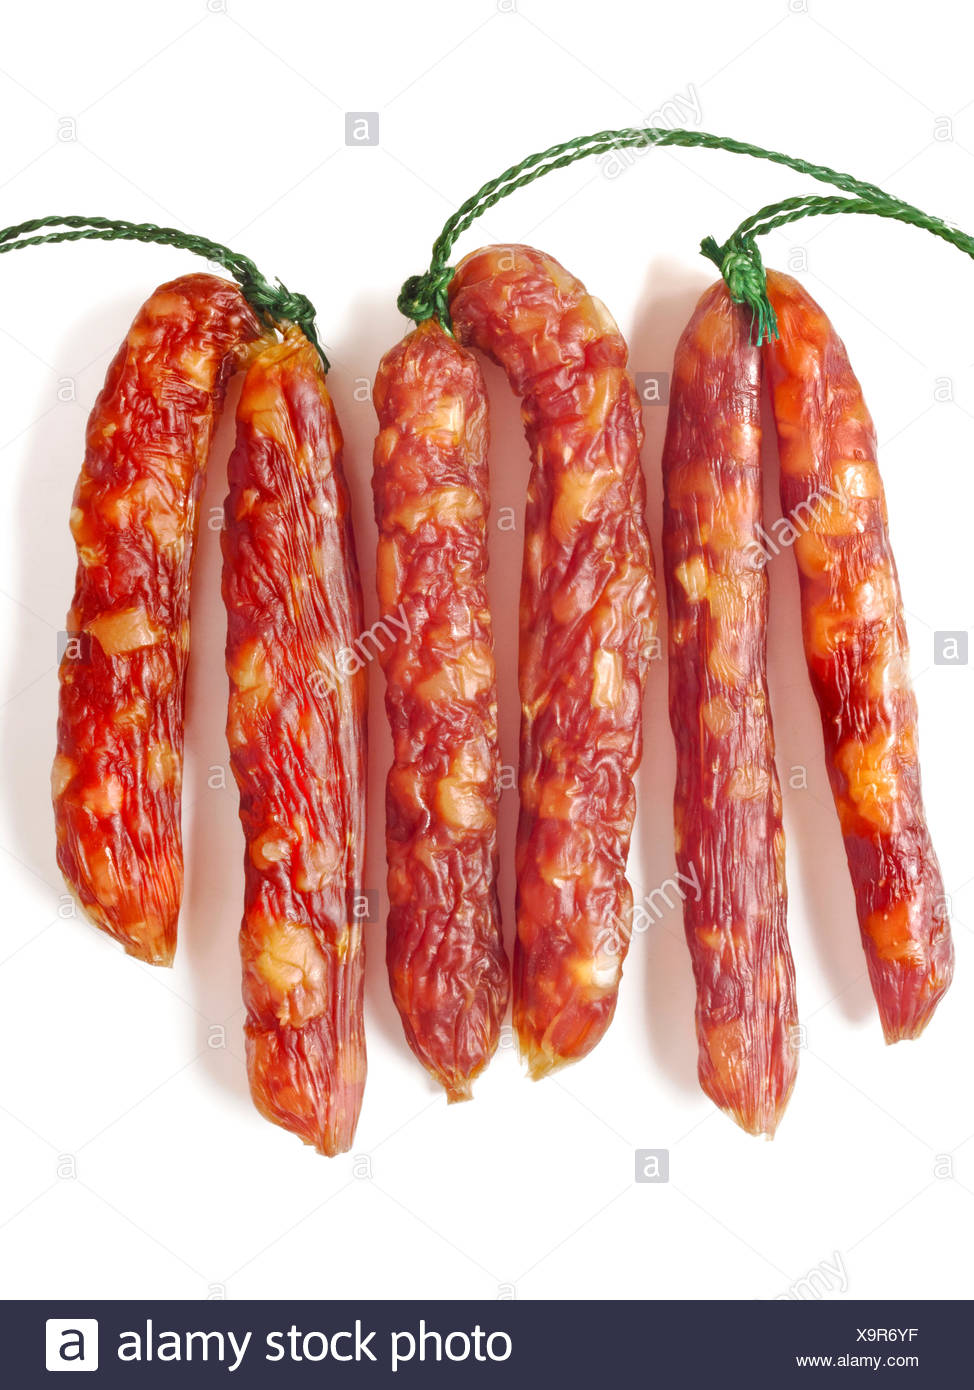 fatty chinese pork sausages - Stock Image